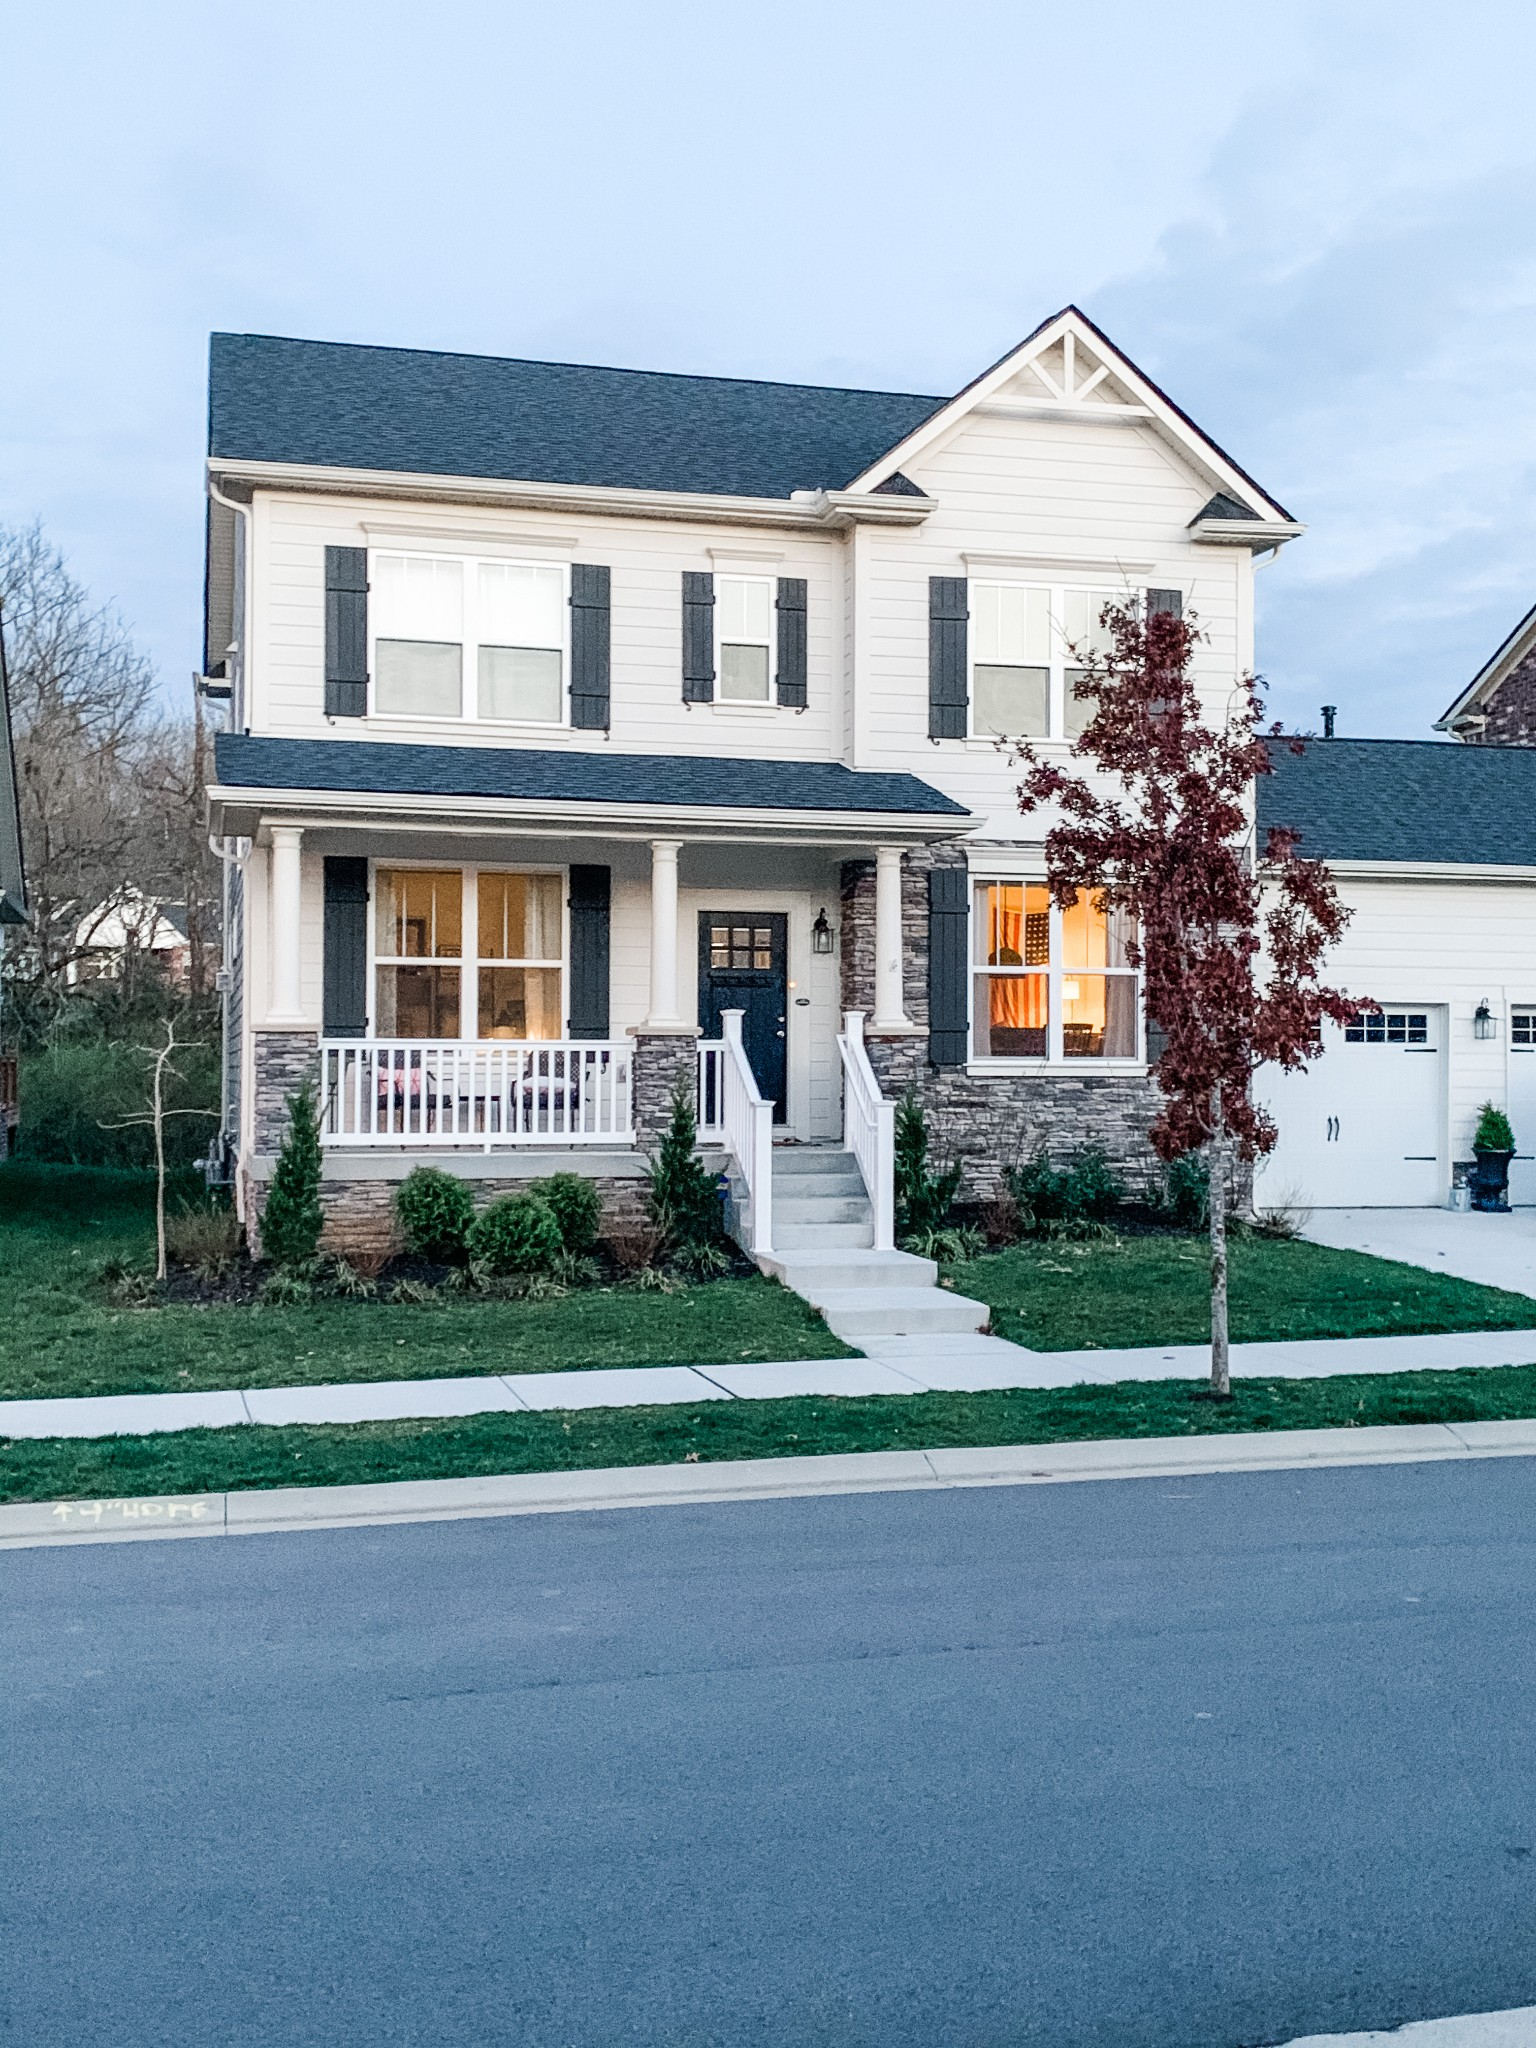 Like new home built by Jones in 2019. Lovely 3 bedroom/2.5 bath with an office, dining room, eat in kitchen and open floorplan. Private treed backyard. Neutral color palate and an easy to move into home. You will fall in love with this one!